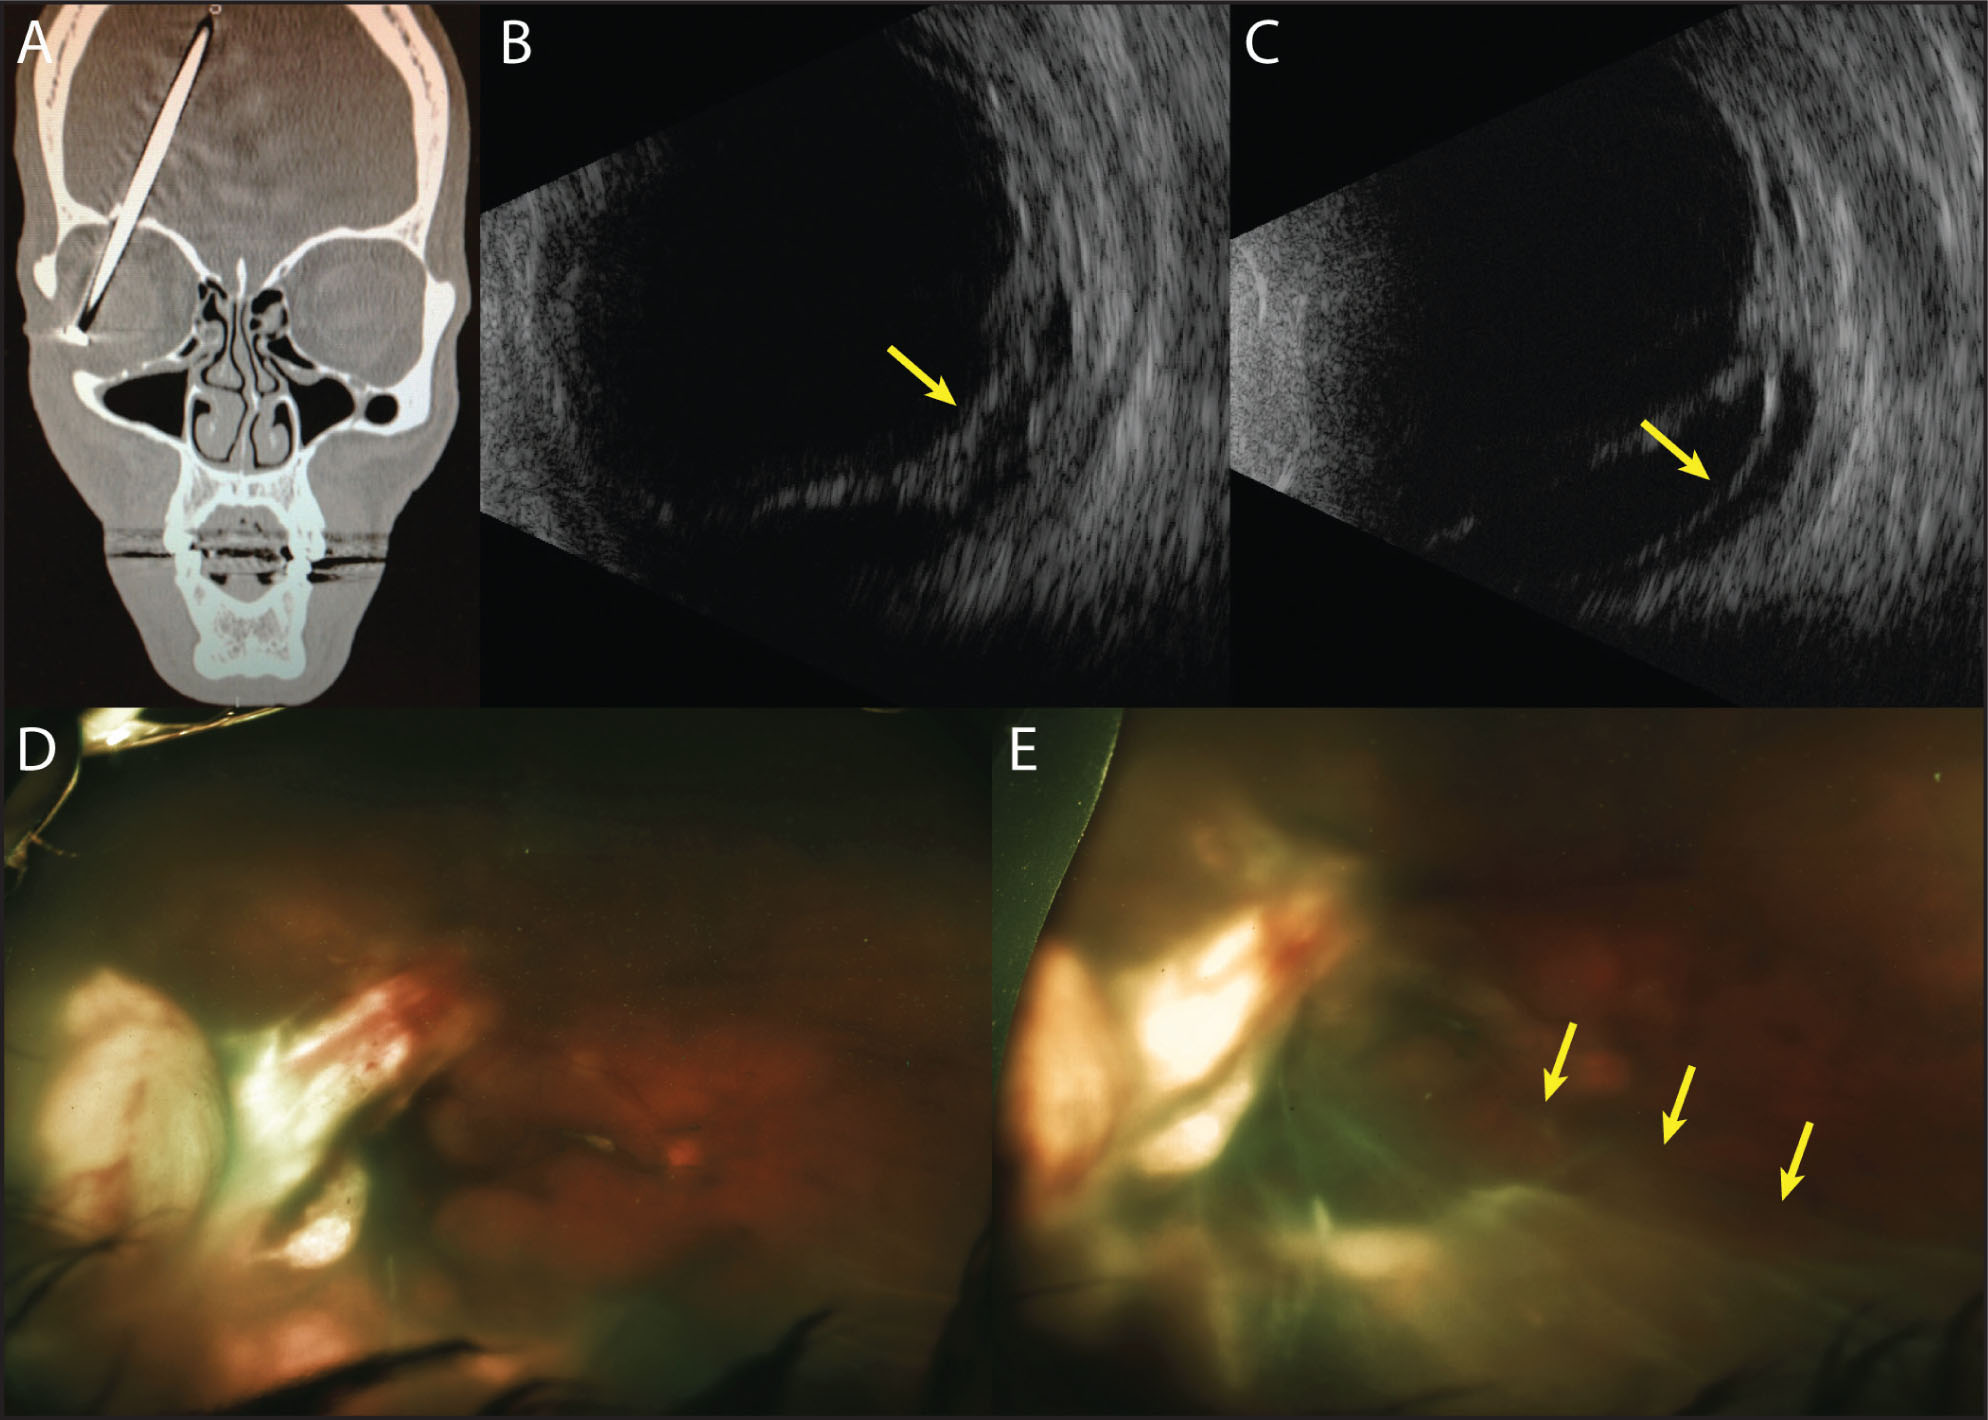 Case 1. (A) An orbital computed tomography scan without contrast showing an occult 8-cm nail from a nail gun, embedded in the right orbit without penetrating the globe, which extends through the orbital roof and into the frontal lobe. (B) Transverse B-scan ultrasonography of the temporal retinal periphery 1 week after presentation shows hyperacoustic membranes and vitreous hemorrhage (arrow) but no retinal detachment. (C) One week later, a retinal detachment is evident (arrow). (D) Optos (Dunfermline, United Kingdom) wide-field fundus photography at 1 week after presentation shows vitreous hemorrhage and traumatic chorioretinal rupture temporally. (E) Wide-field fundus photography 1 week later shows a new retinal detachment (arrows).